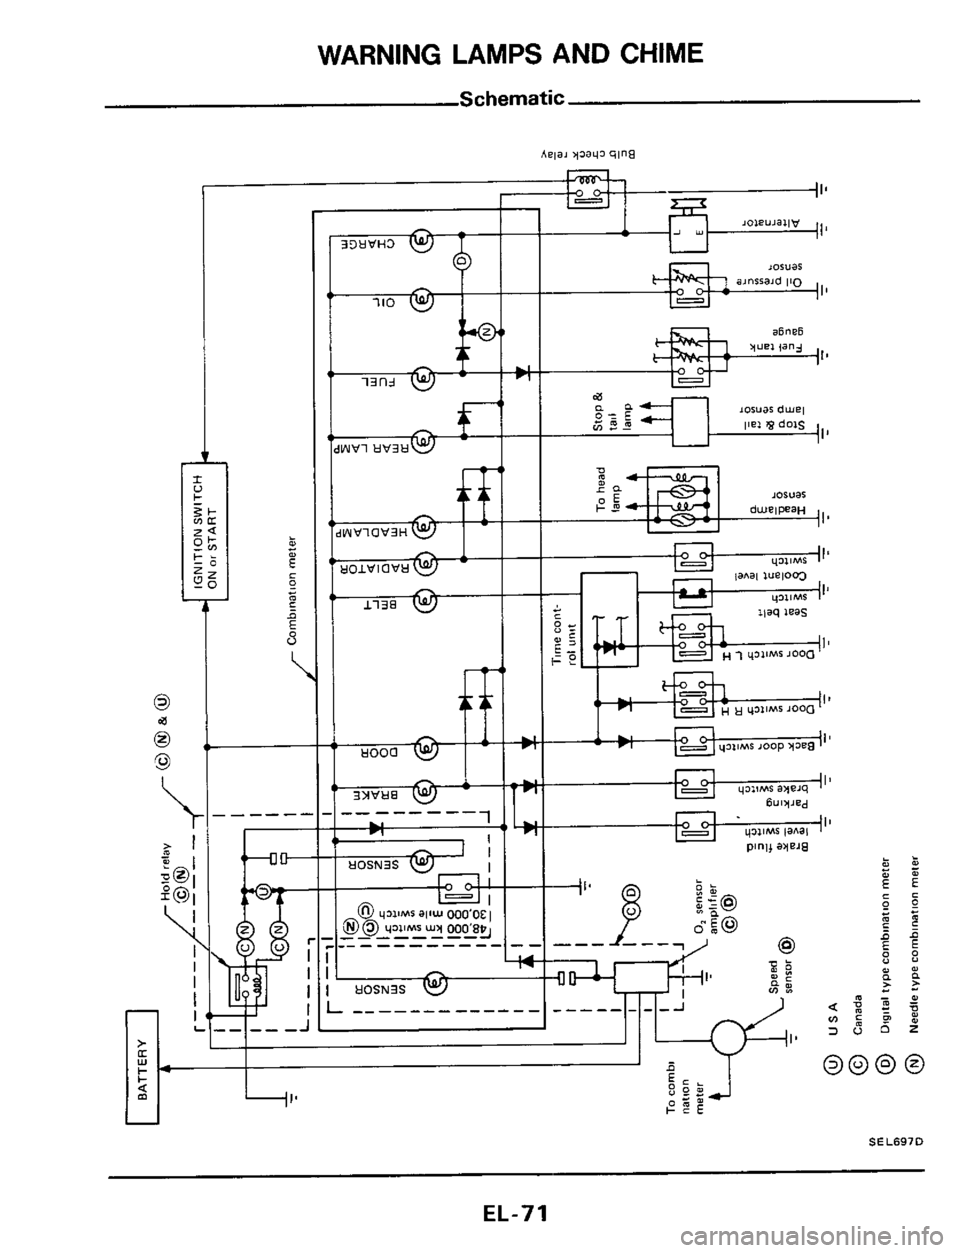 Altec rd alternator wiring diagram complete